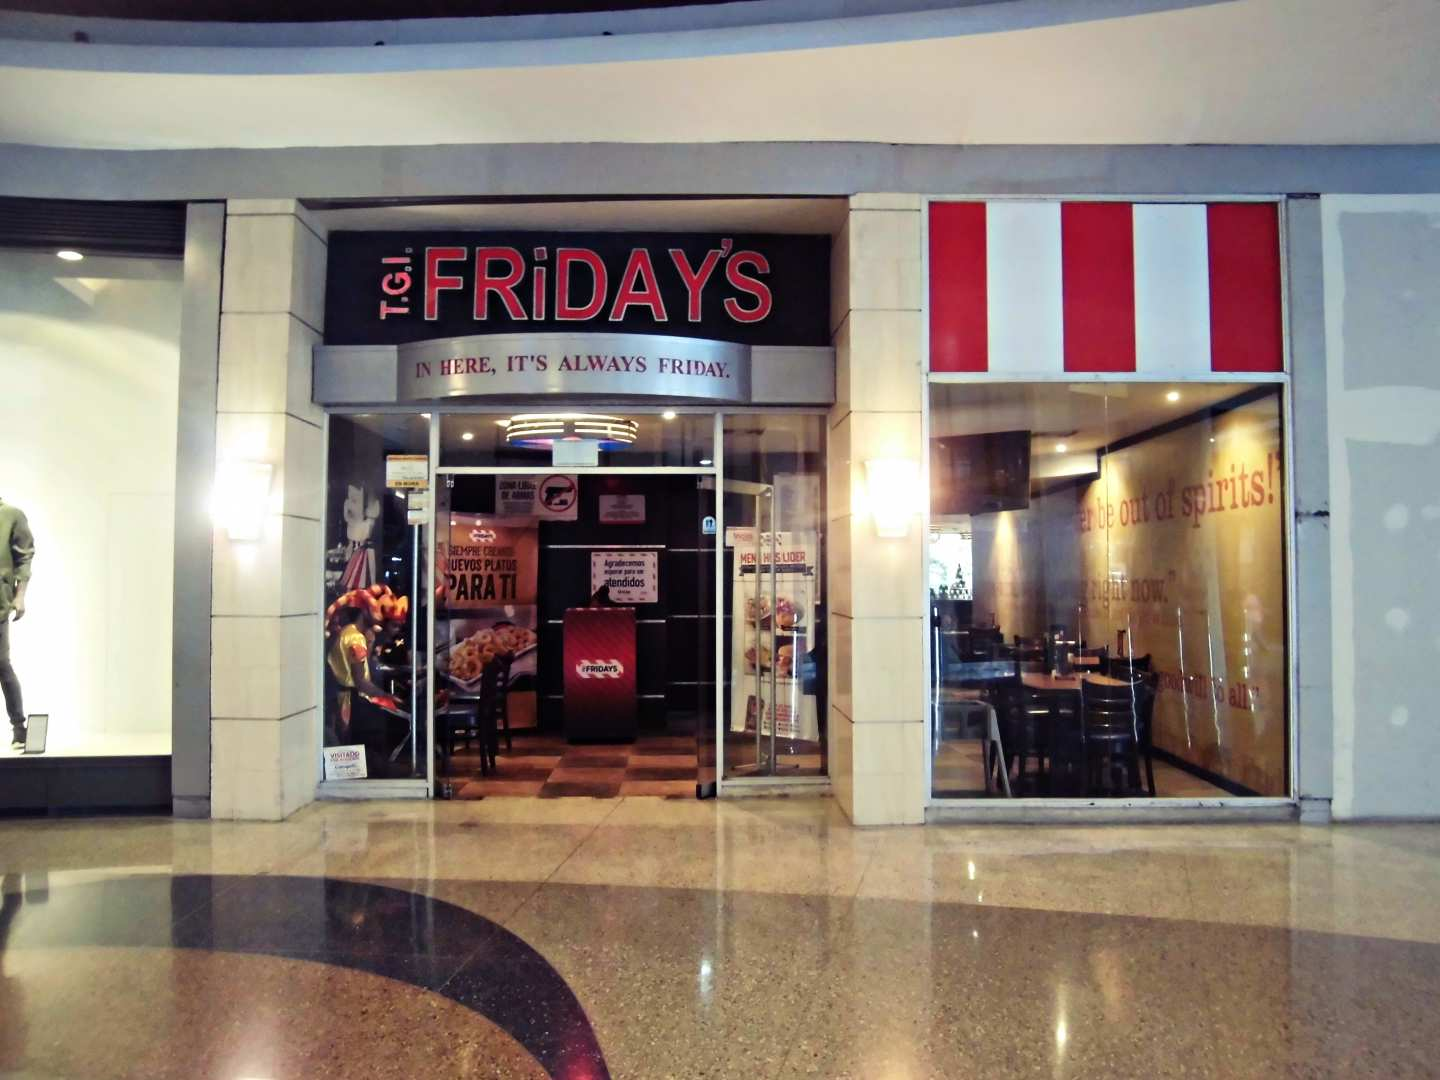 T.G.I. Friday's (C. C. Lider)